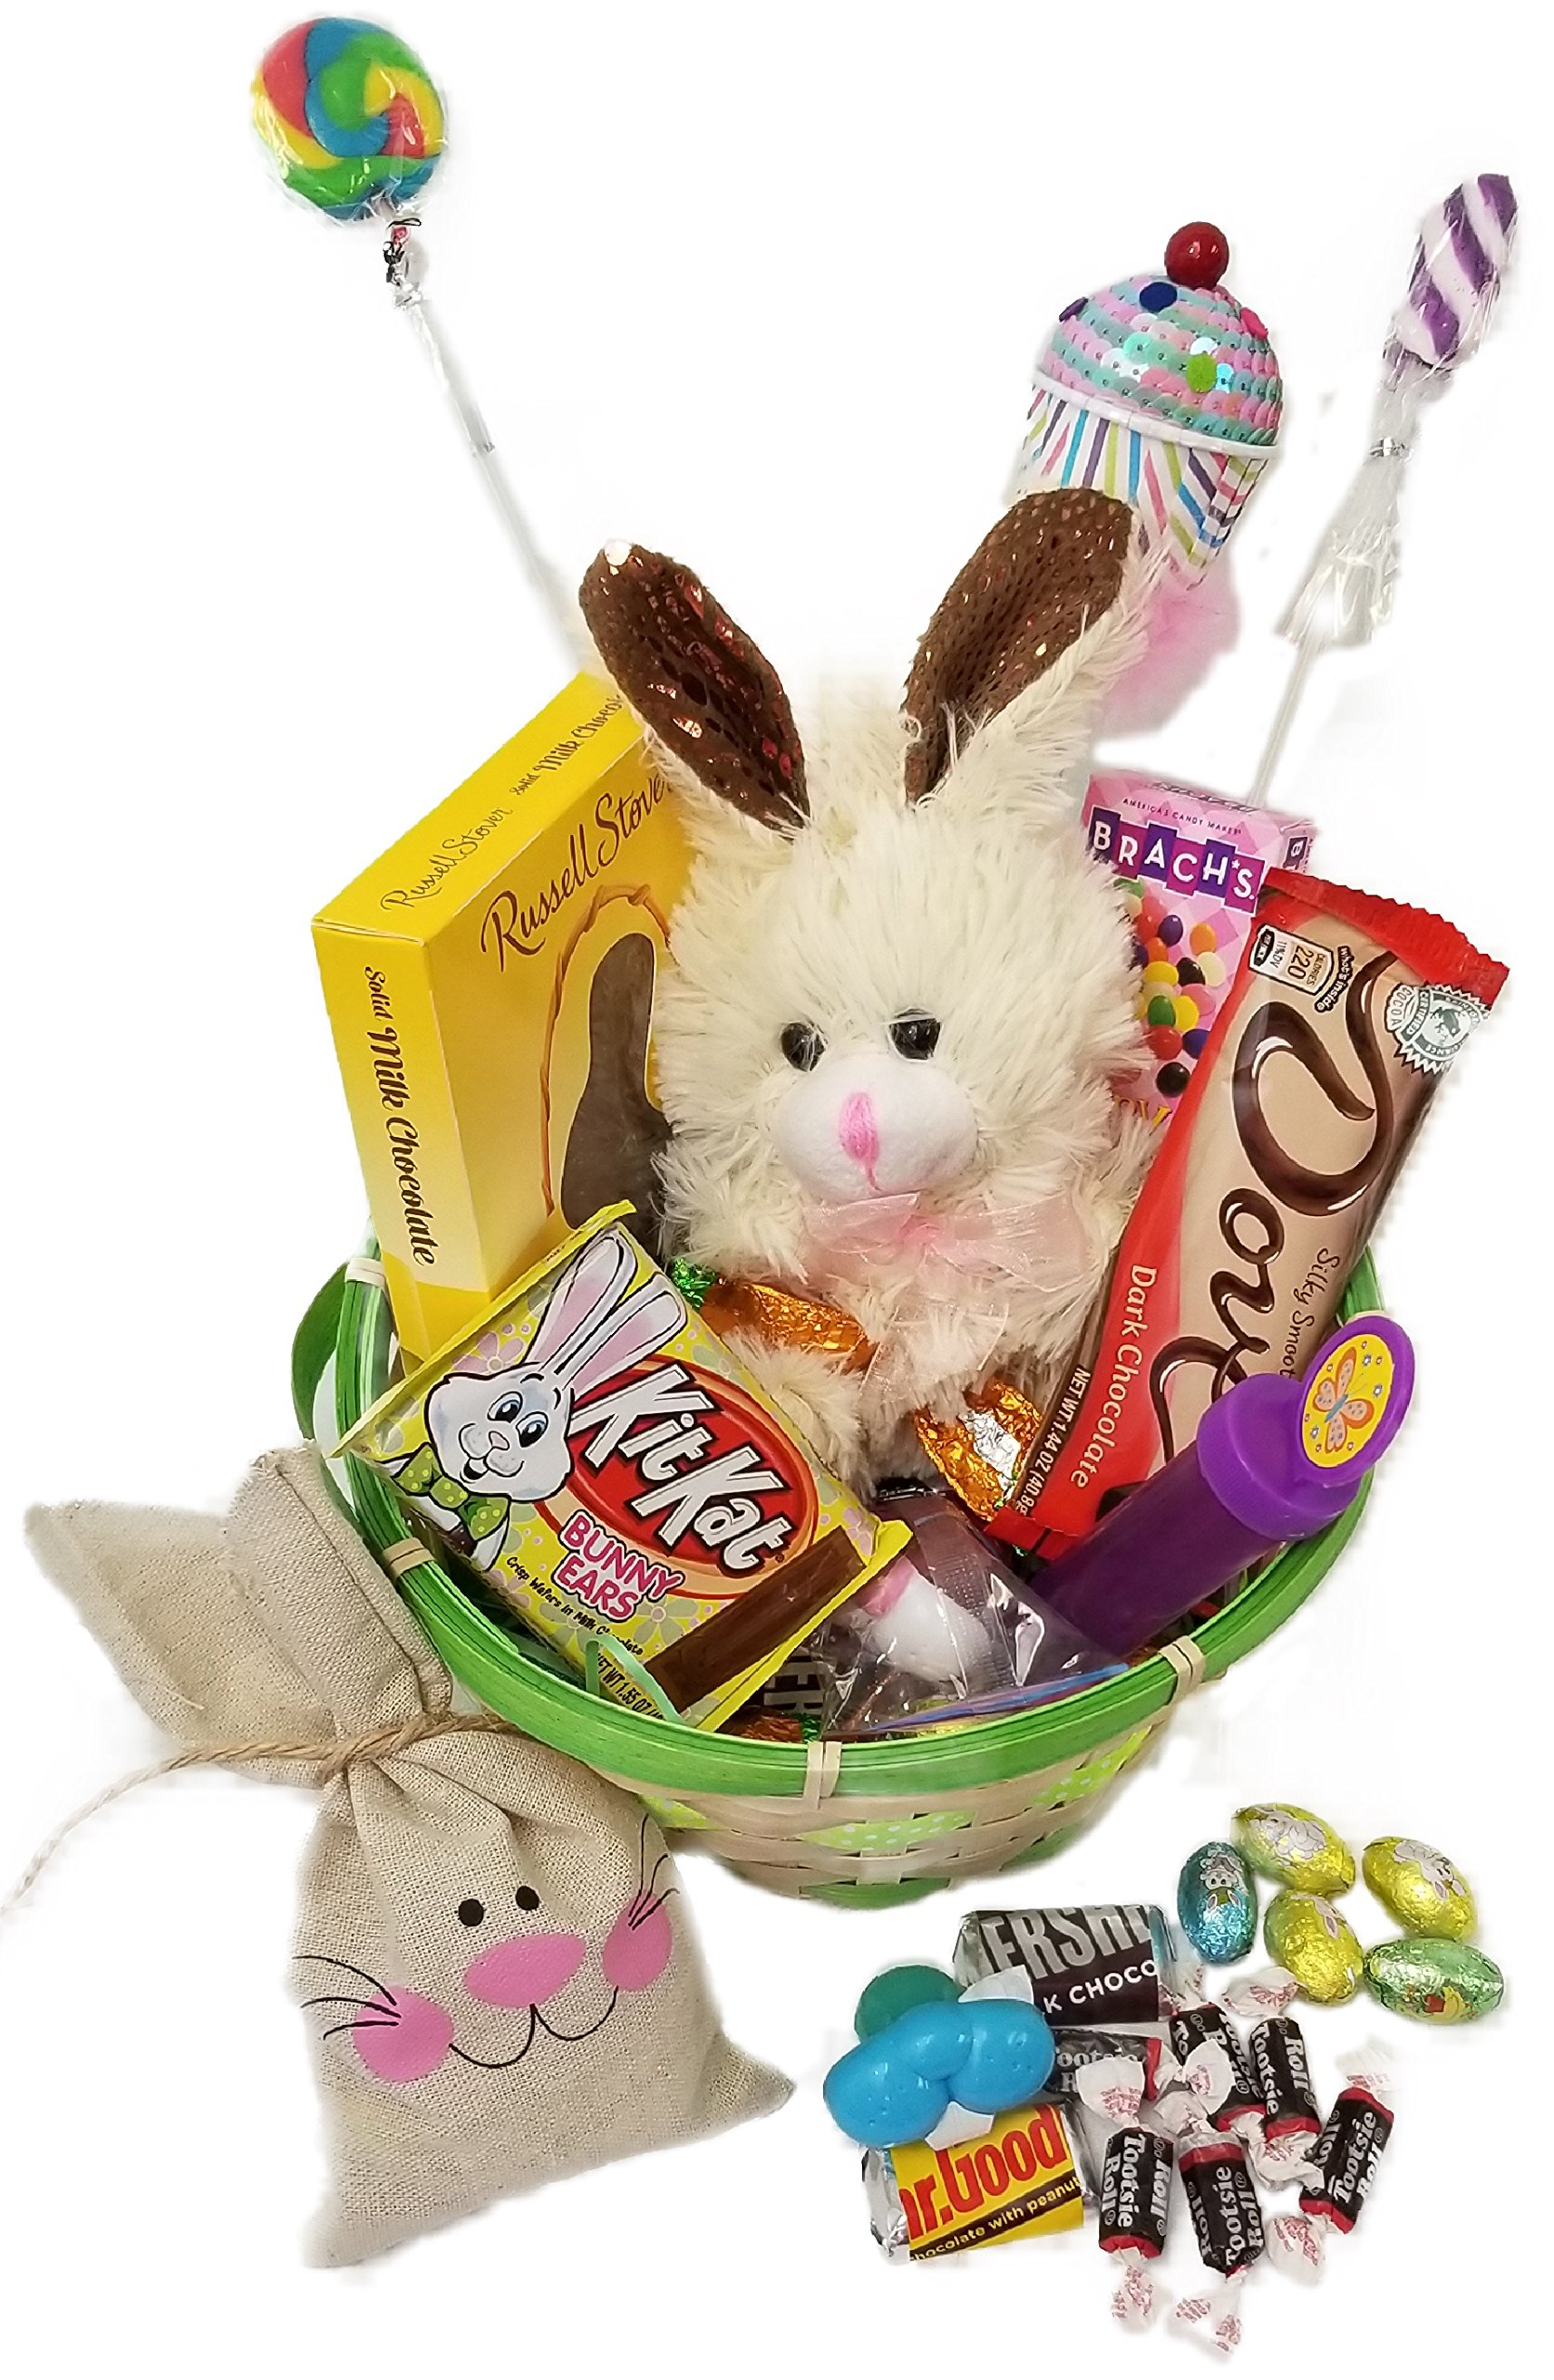 Cheap easter gifts chocolate find easter gifts chocolate deals on get quotations lots of chocolate easter basket for kids and adults chocolate scented stuffed bunny fun negle Images